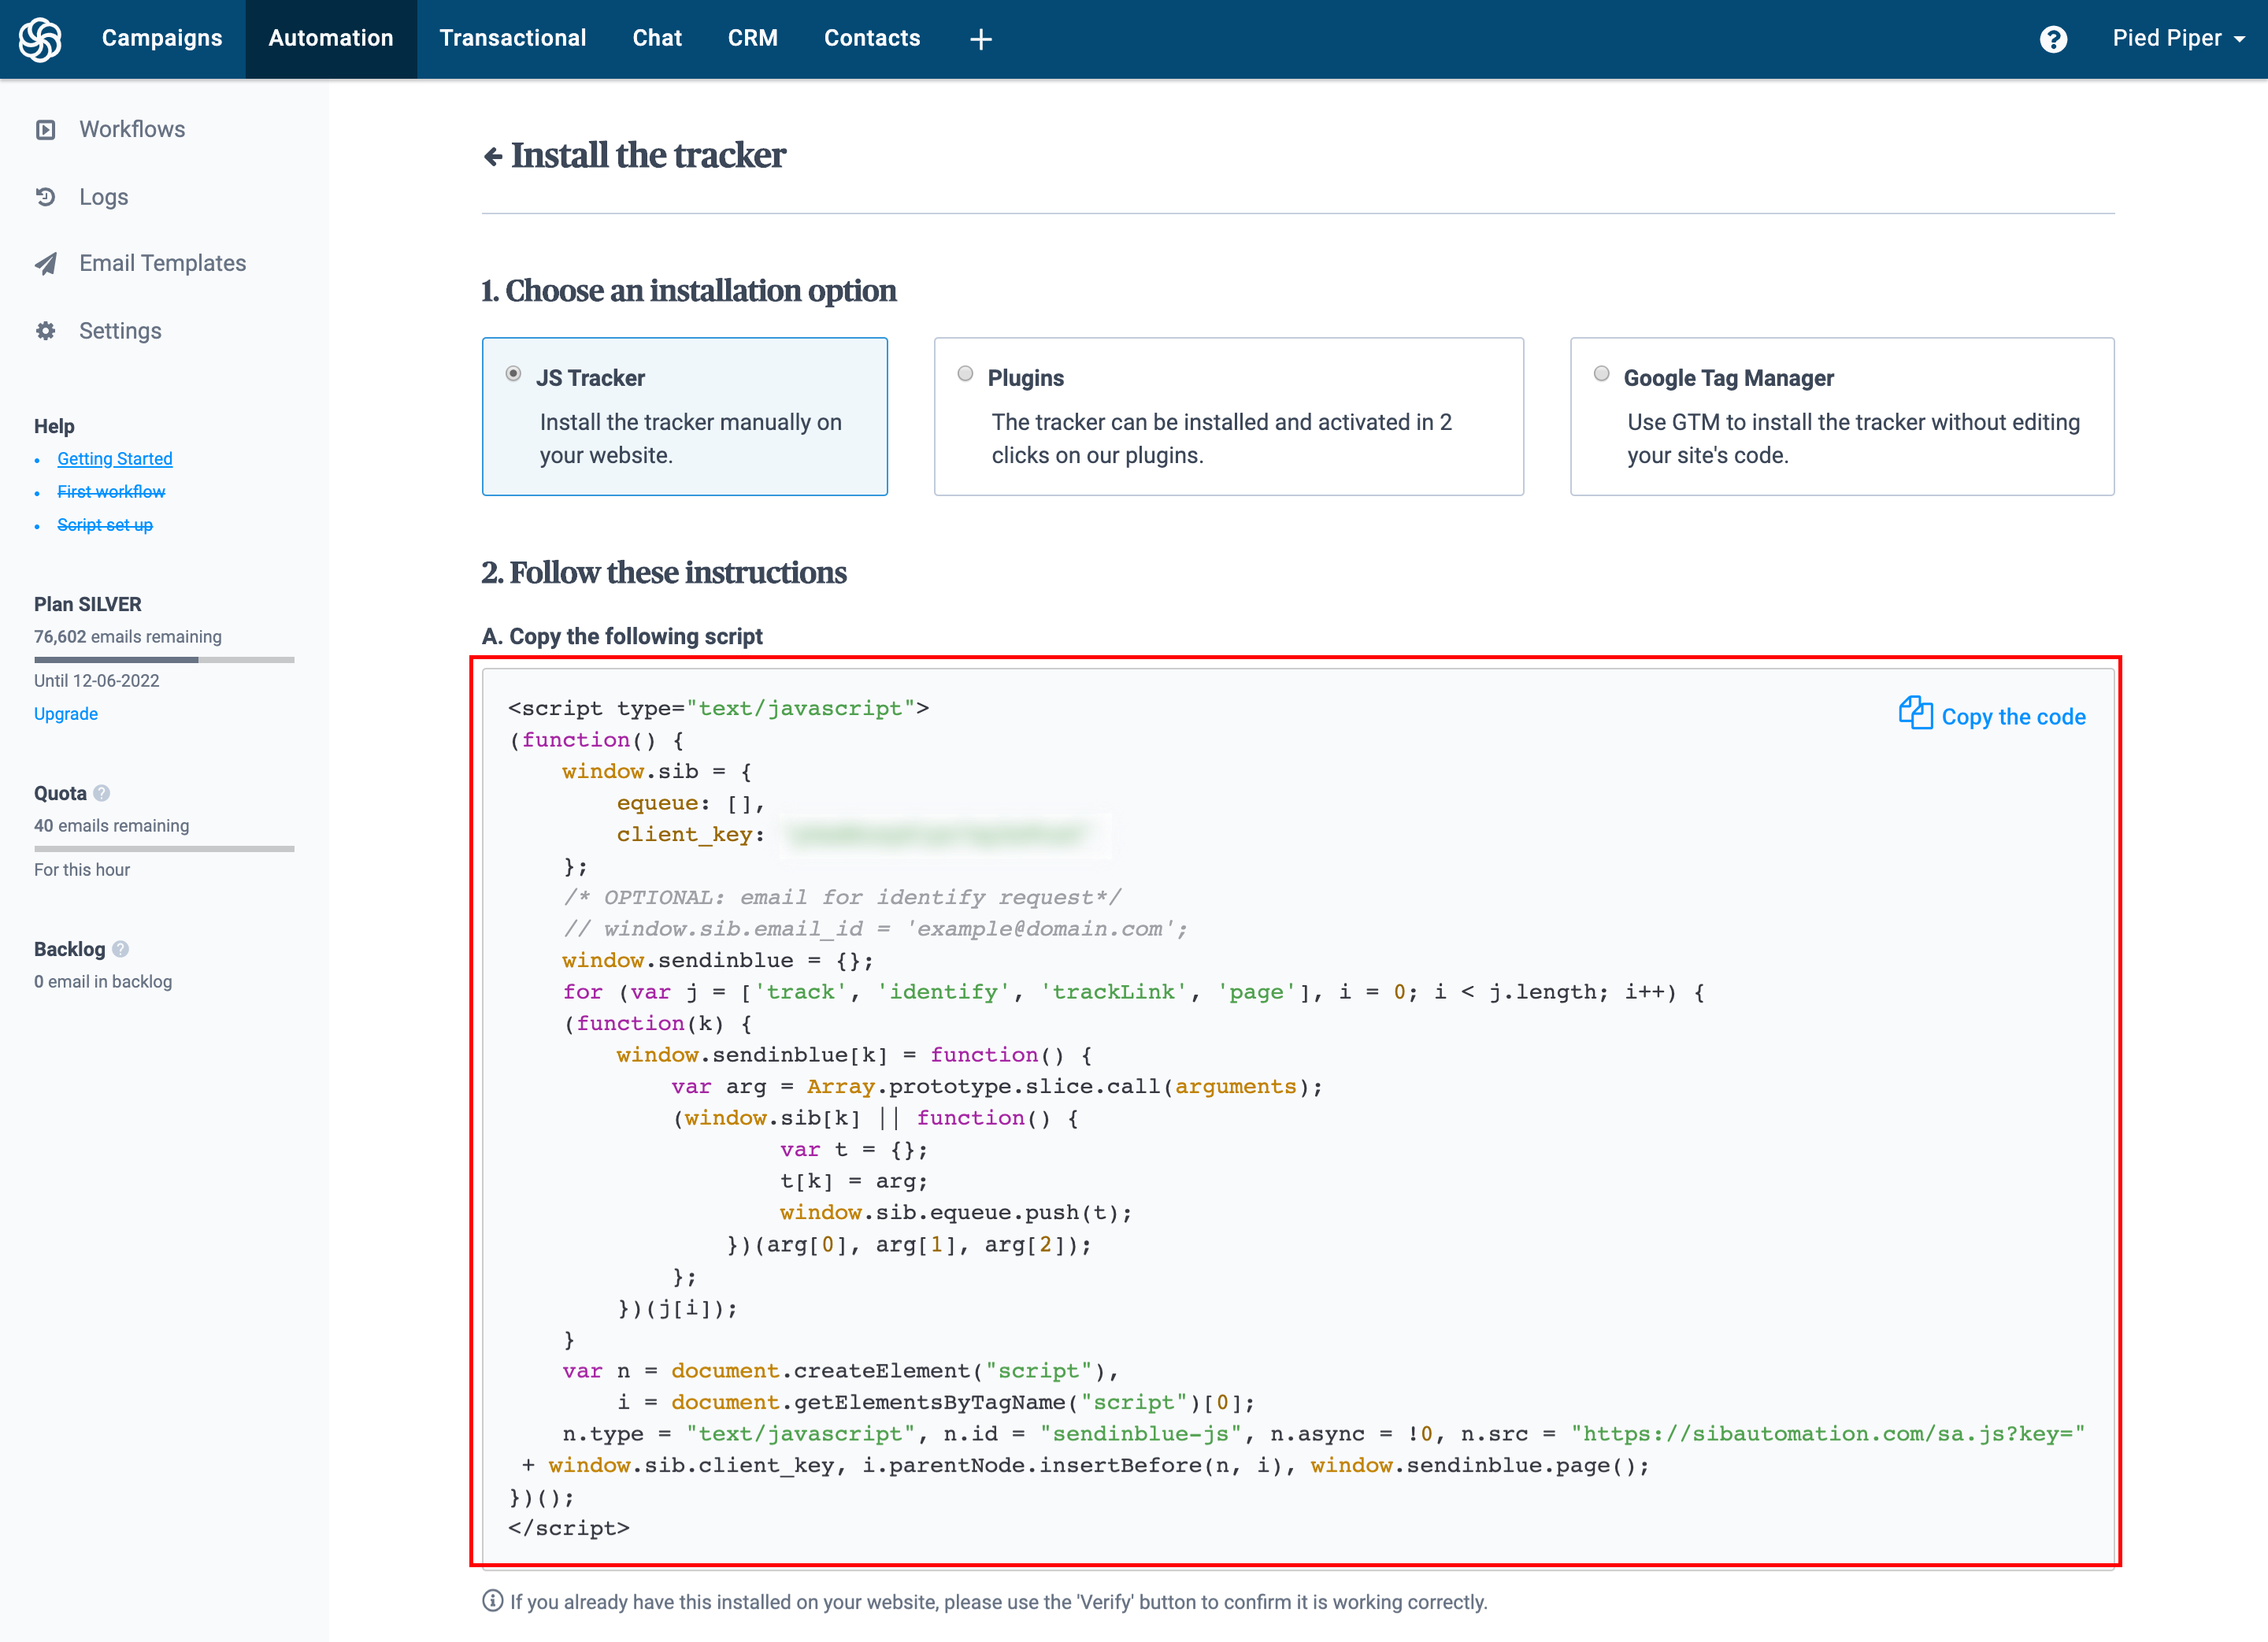 Get your Javascript Tracker Code from Automation > Settings > Tracking Code